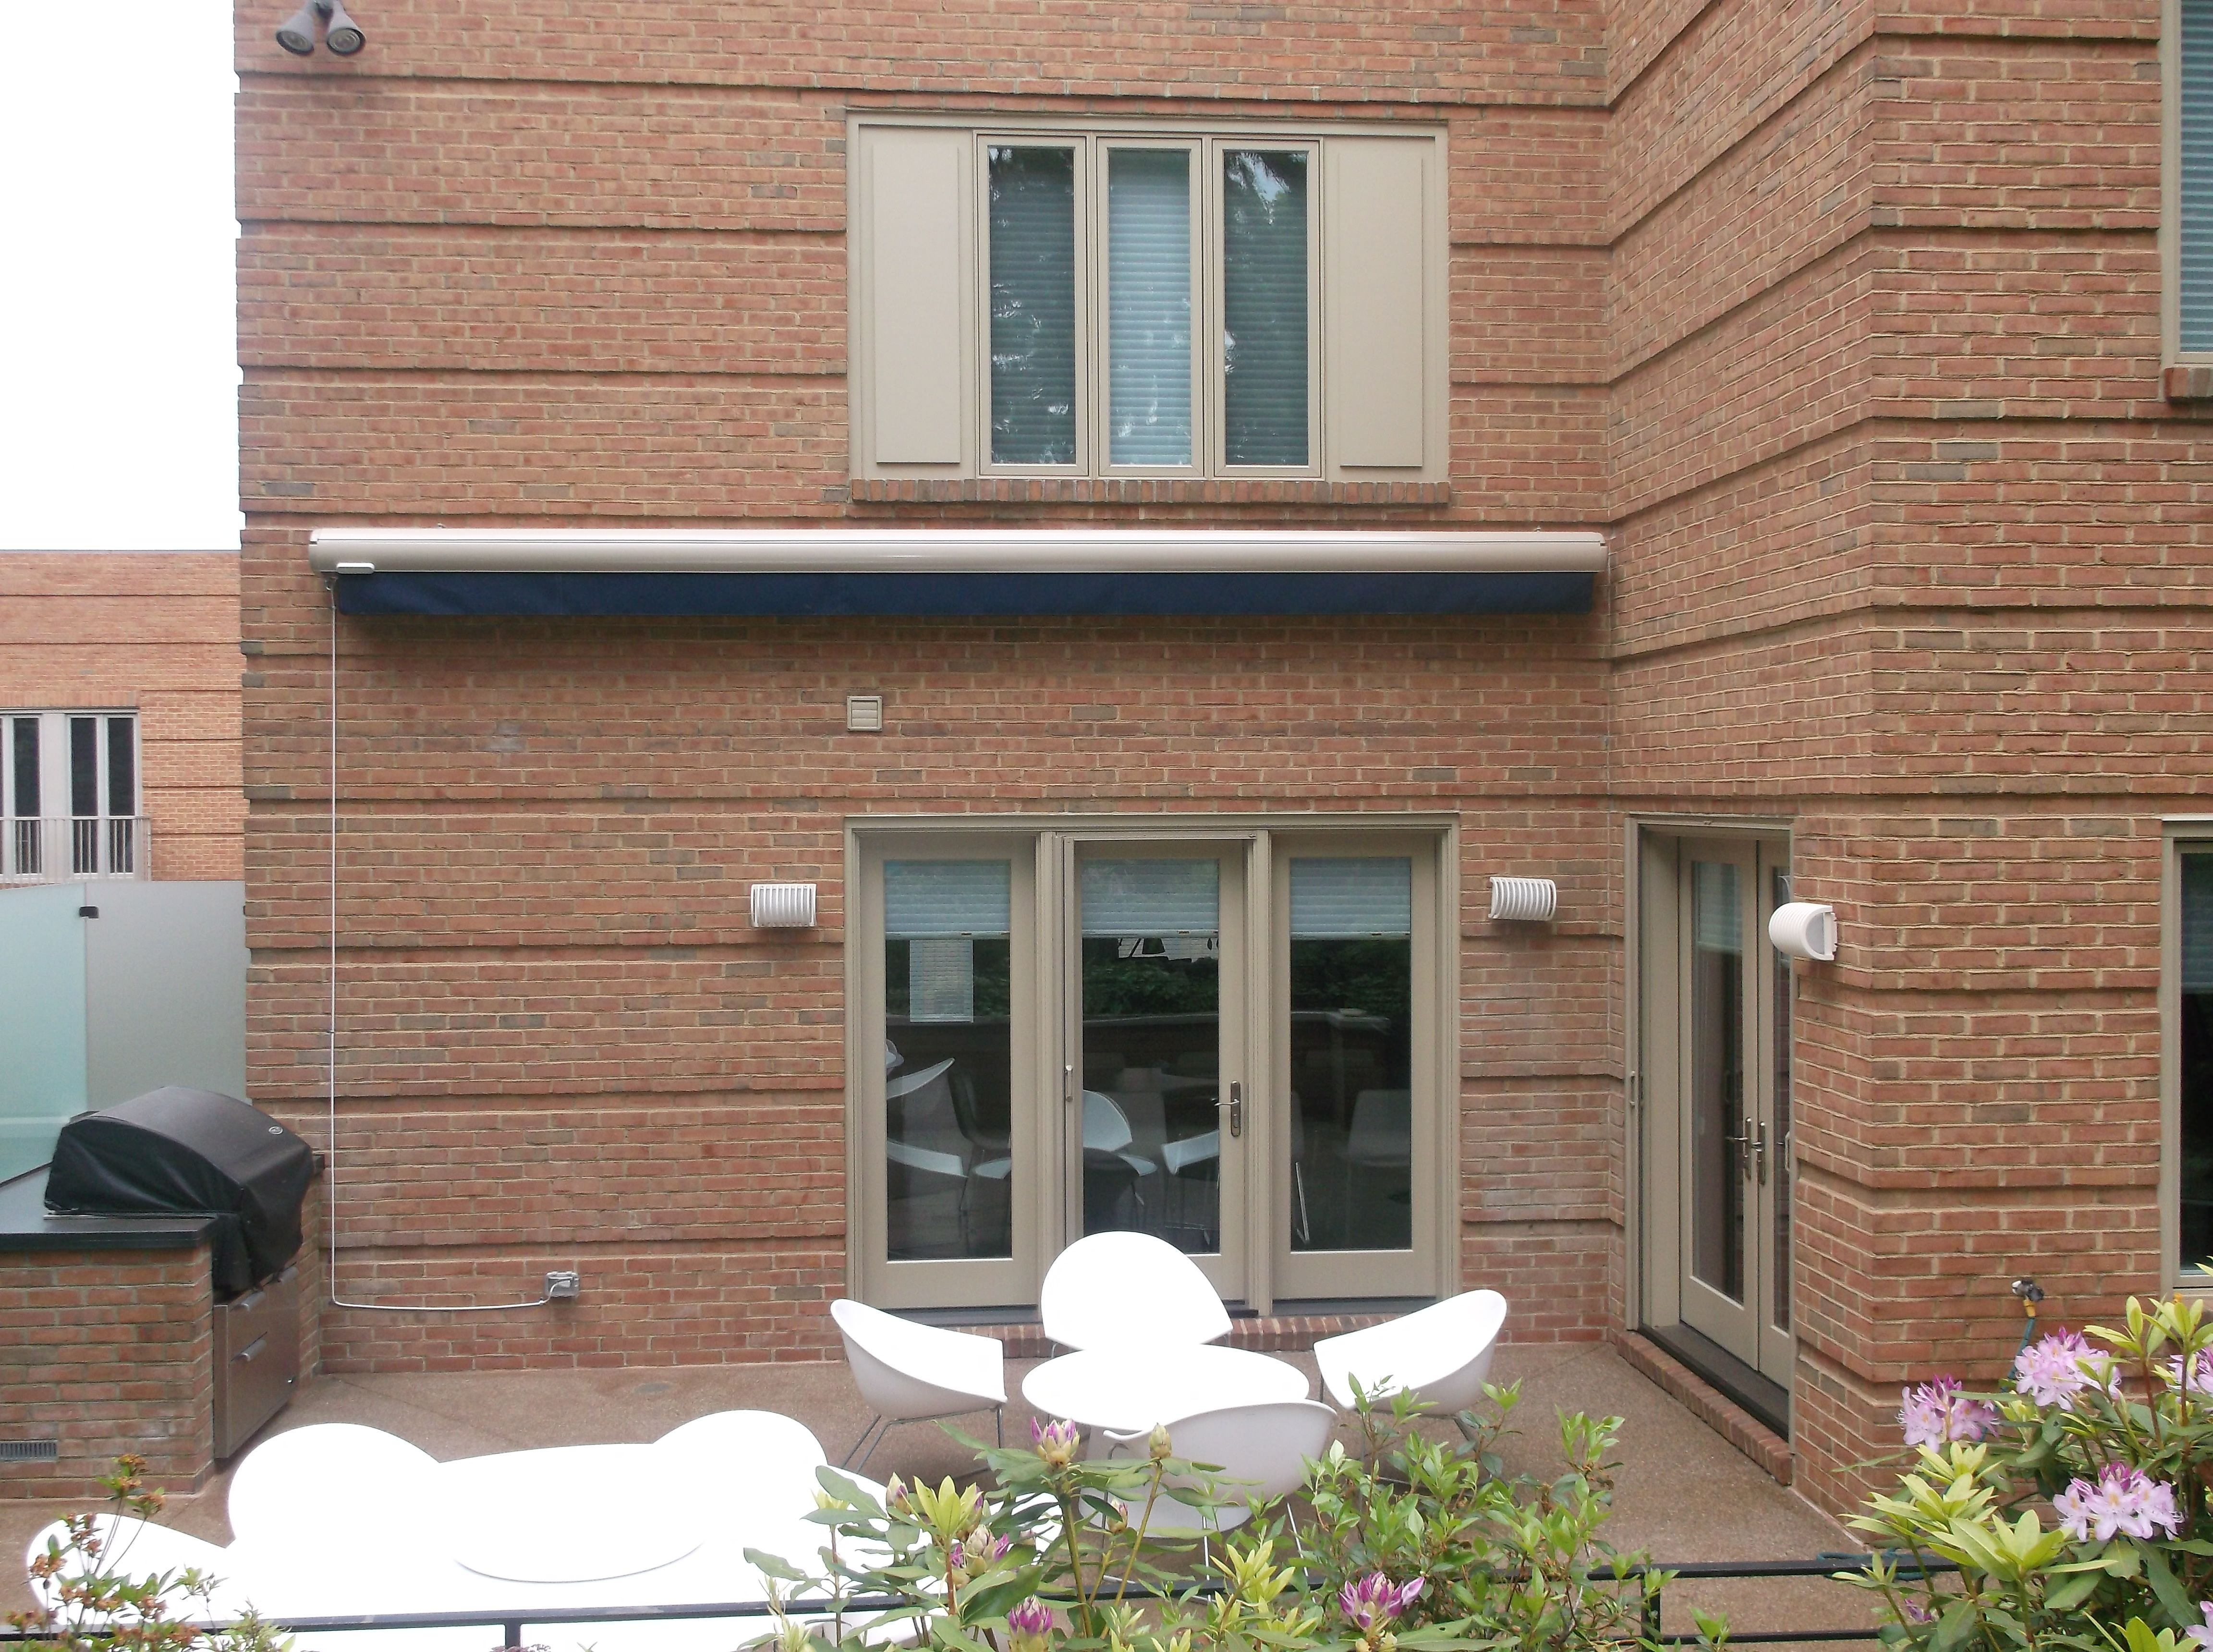 This Is A Suntube Retractable Awning Installed In Pittsburgh By